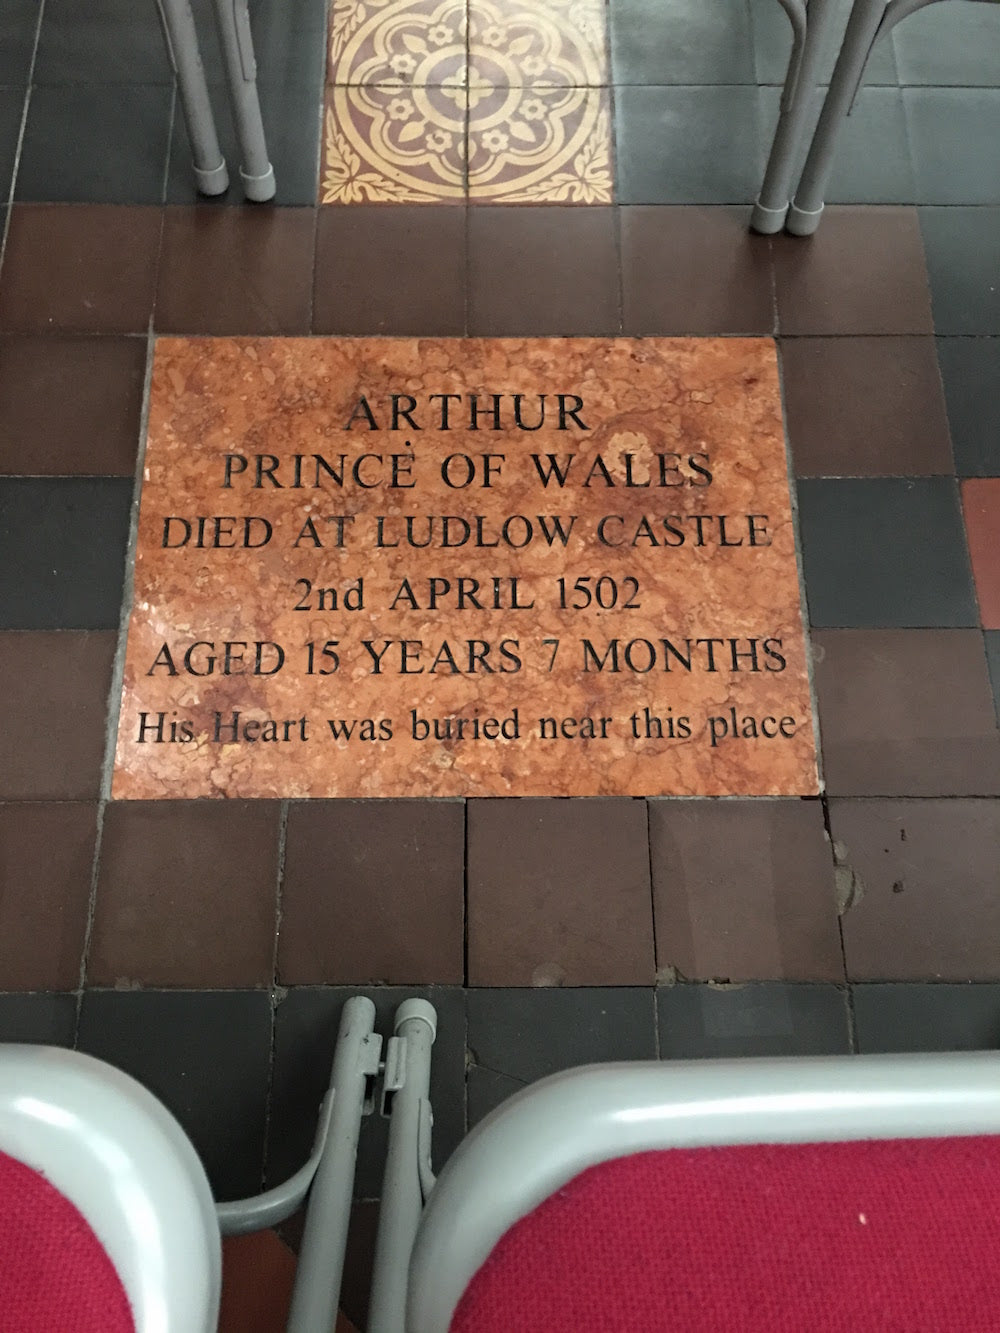 Things to do on a Sunday Morning in Ludlow - Arthur Prince of Wales buried here